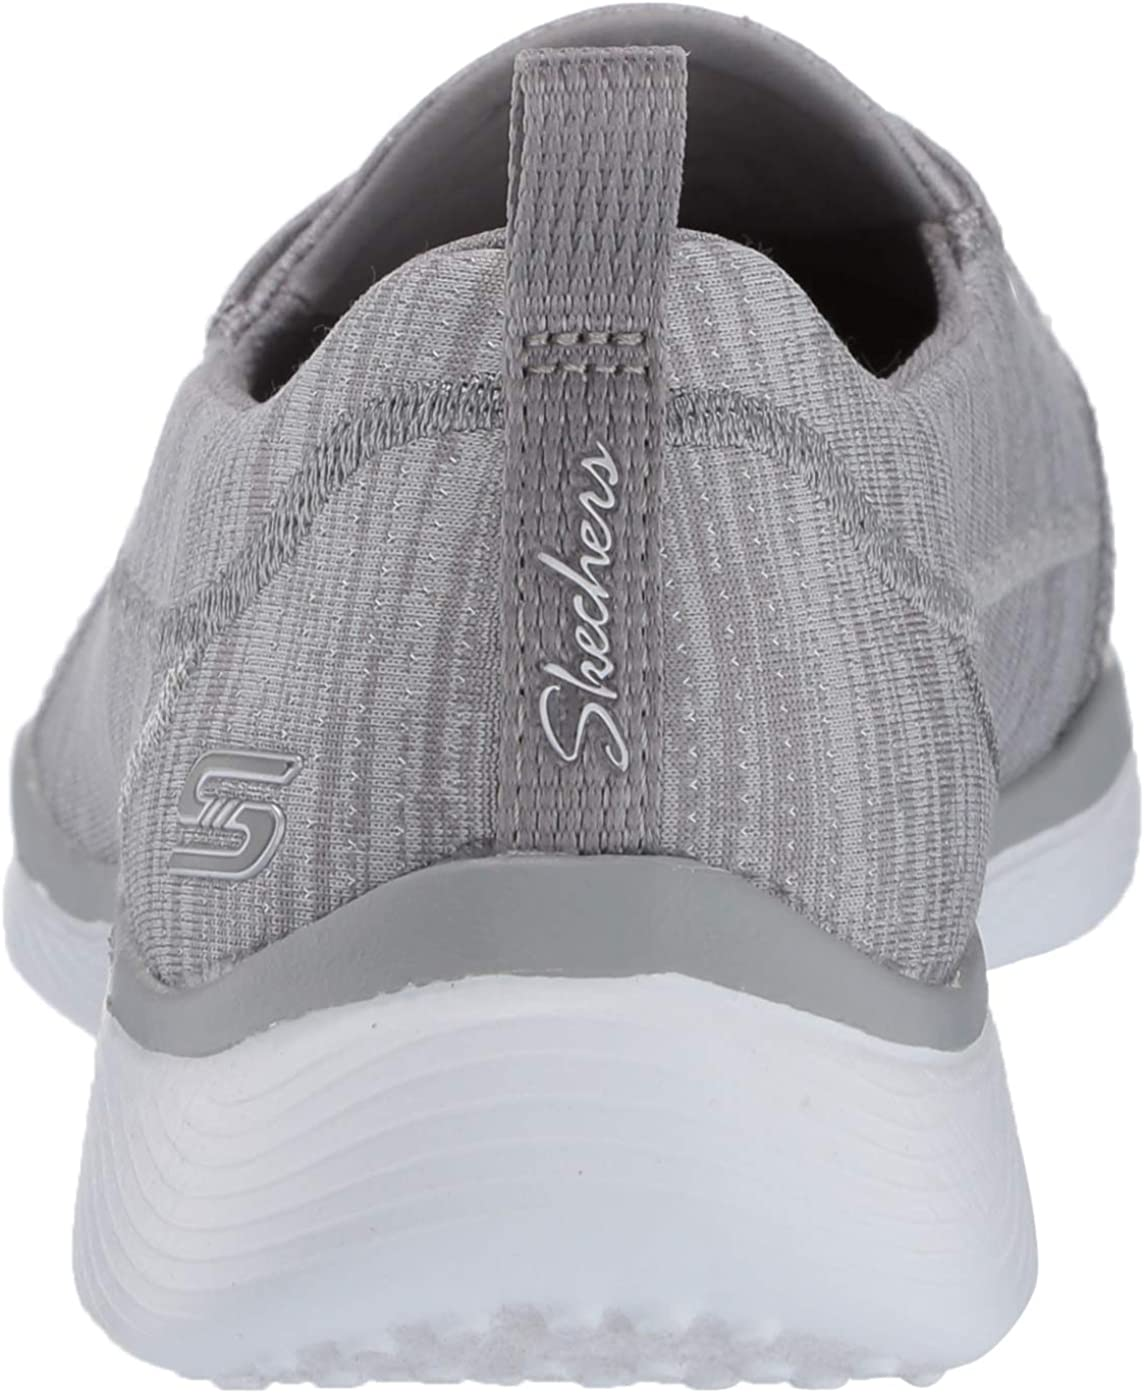 Skechers Microburst 2.0-Best Ever Baskets pour femme Gris